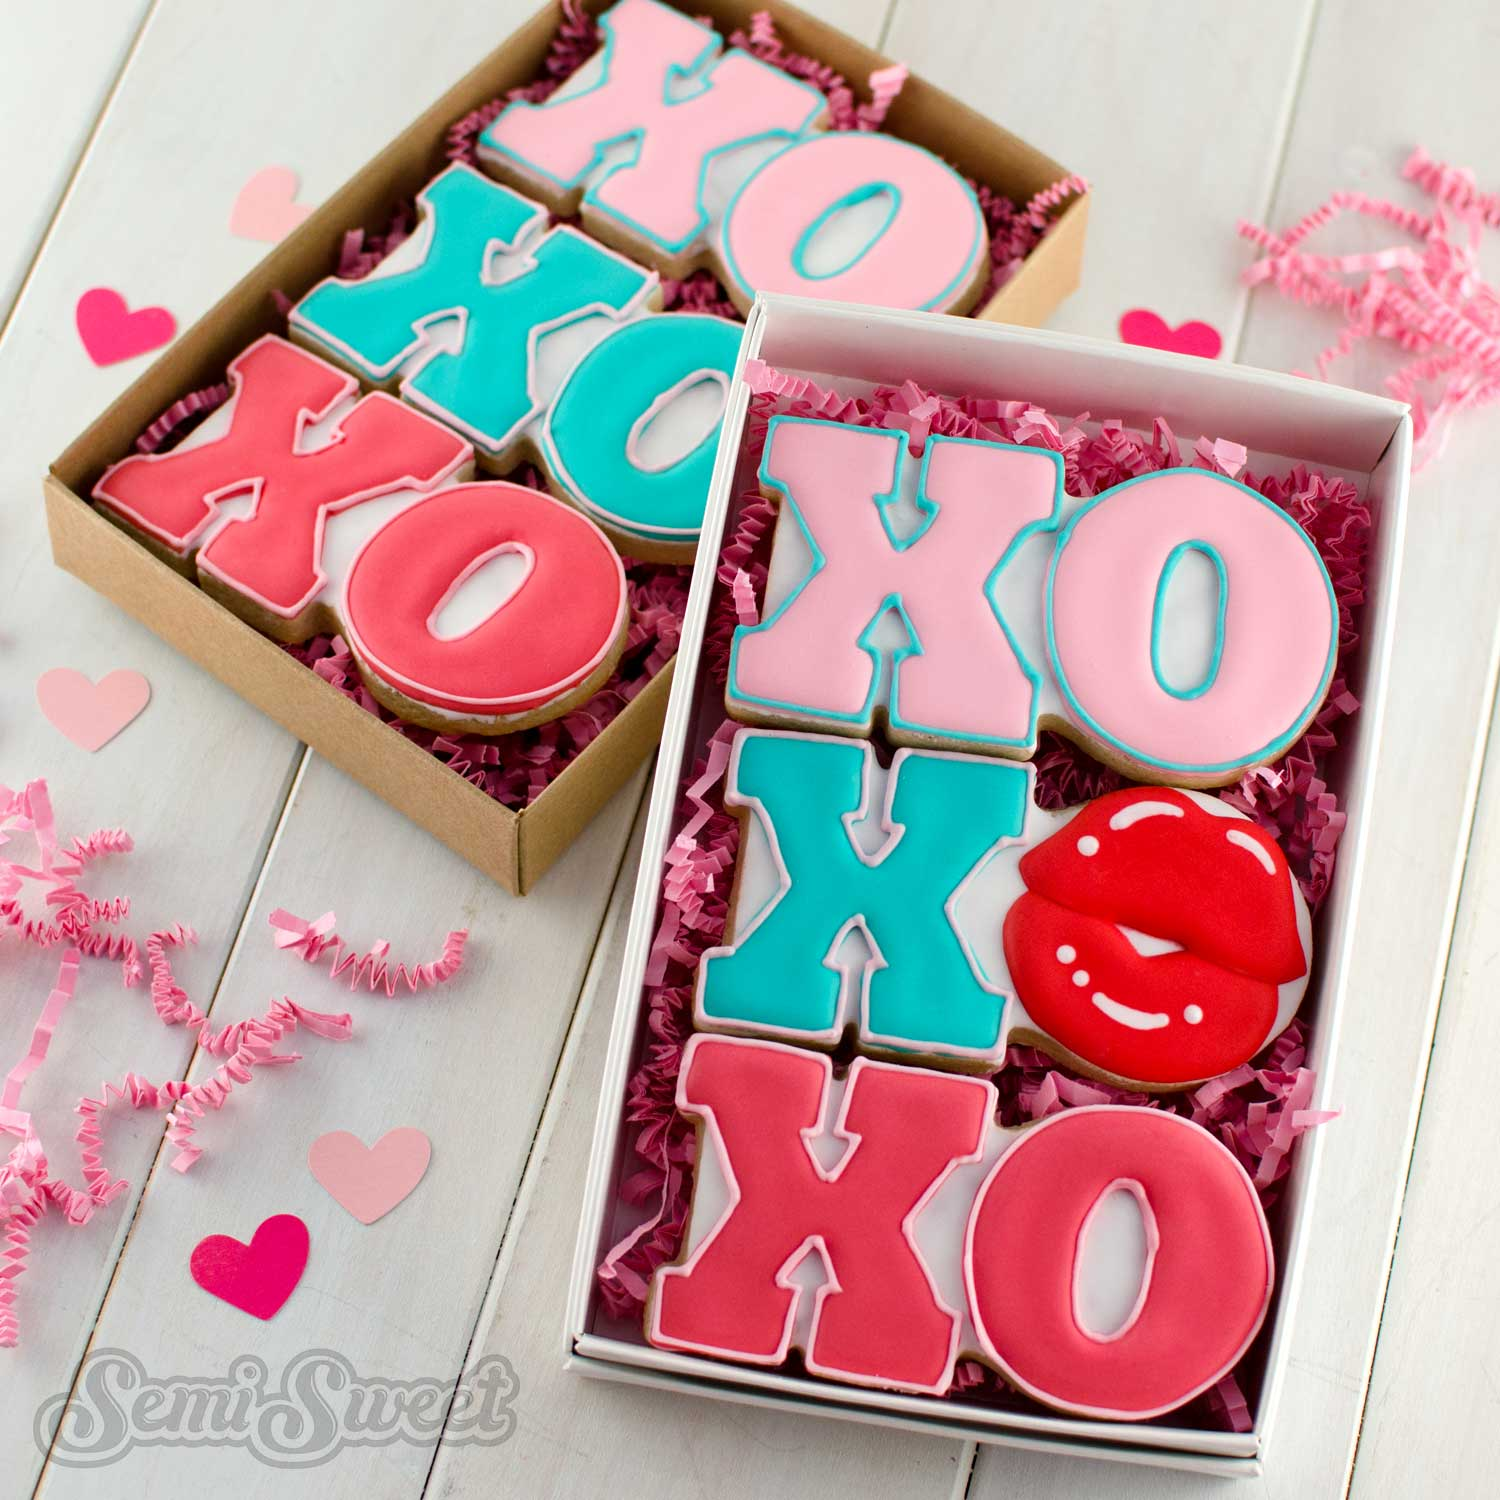 XO Valentine Cookie Set